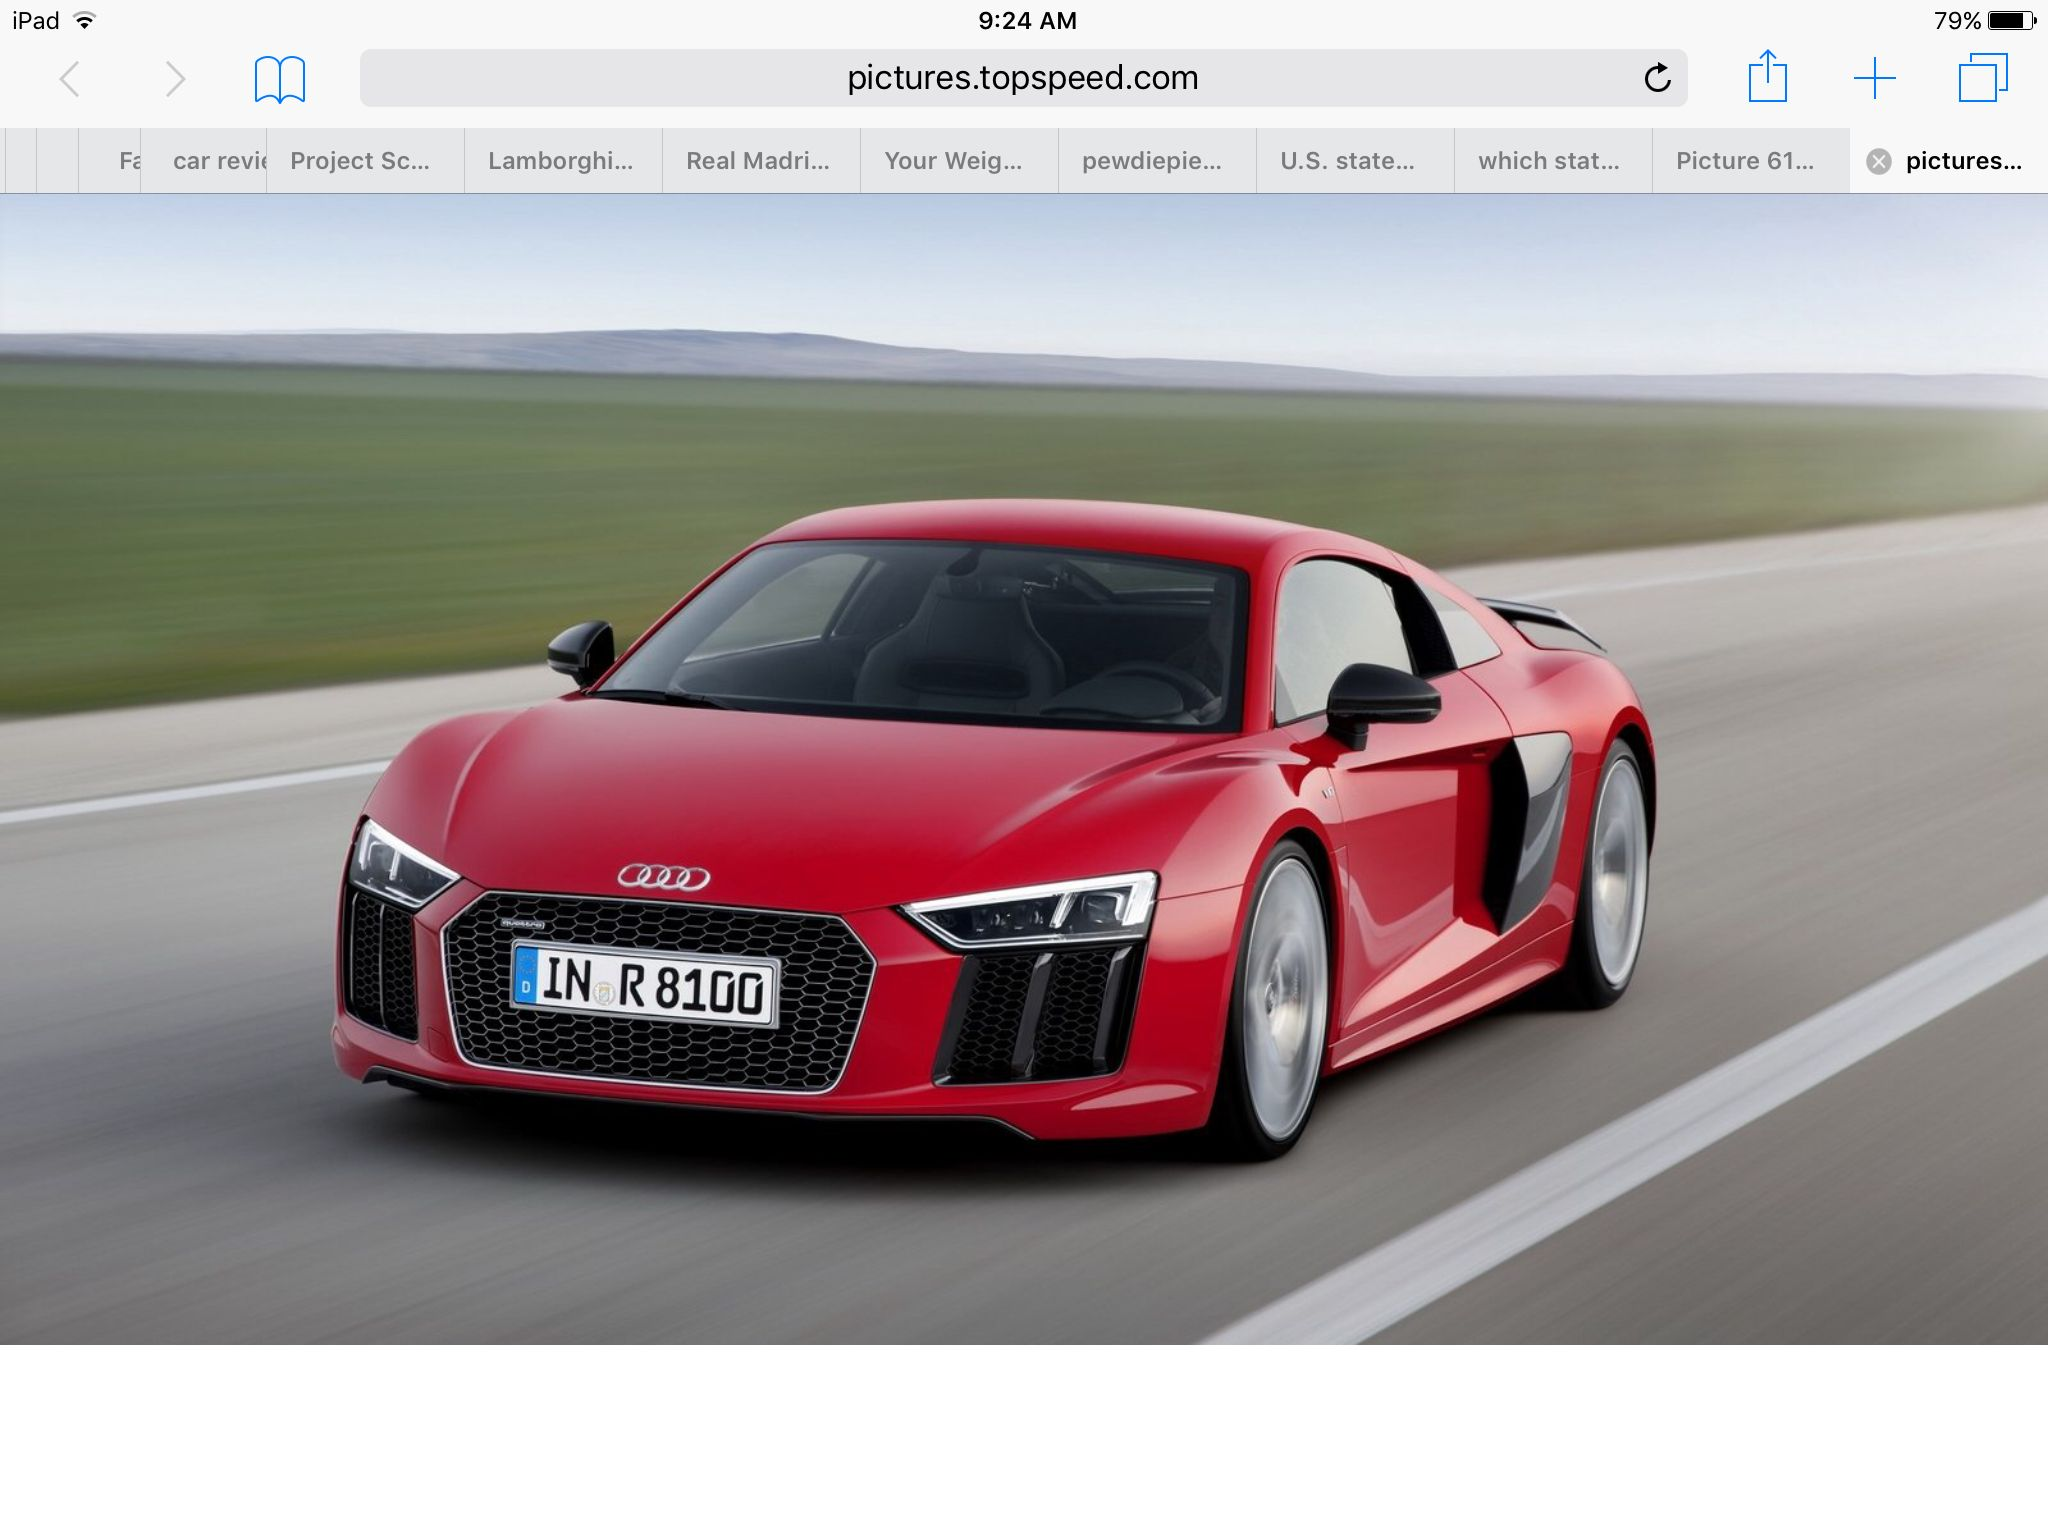 2017 Audi R8 Has A Maximum Speed Of 200 Mph 0 60 Speed Time Is 3 5 Seconds It Costs About 162000 Dollars Audi R8 New Audi R8 Audi R8 V10